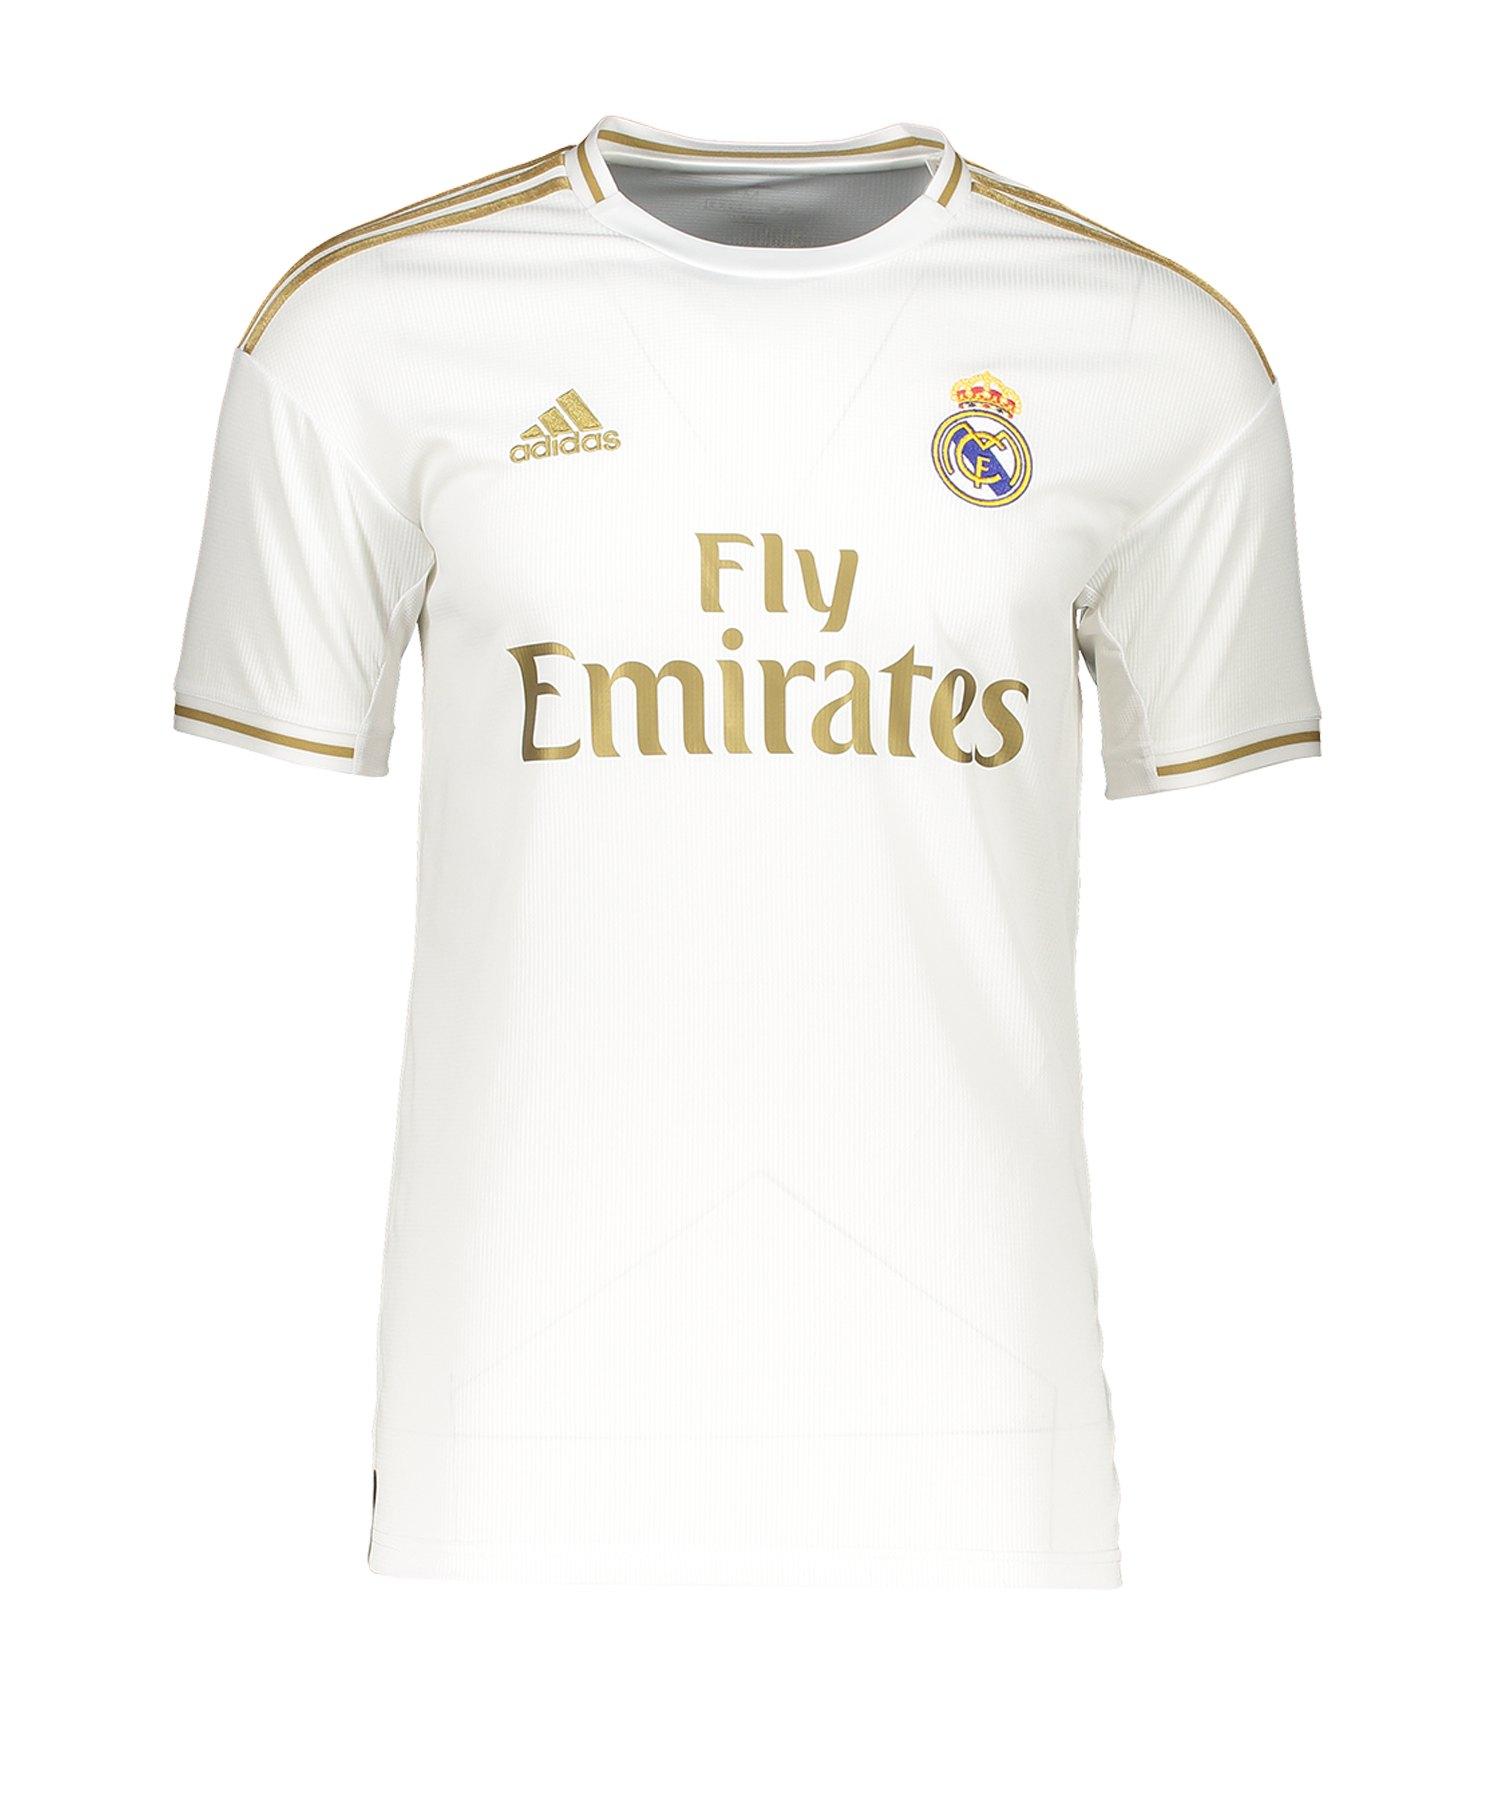 adidas Real Madrid Trikot Home 2019/2020 Weiss - Weiss